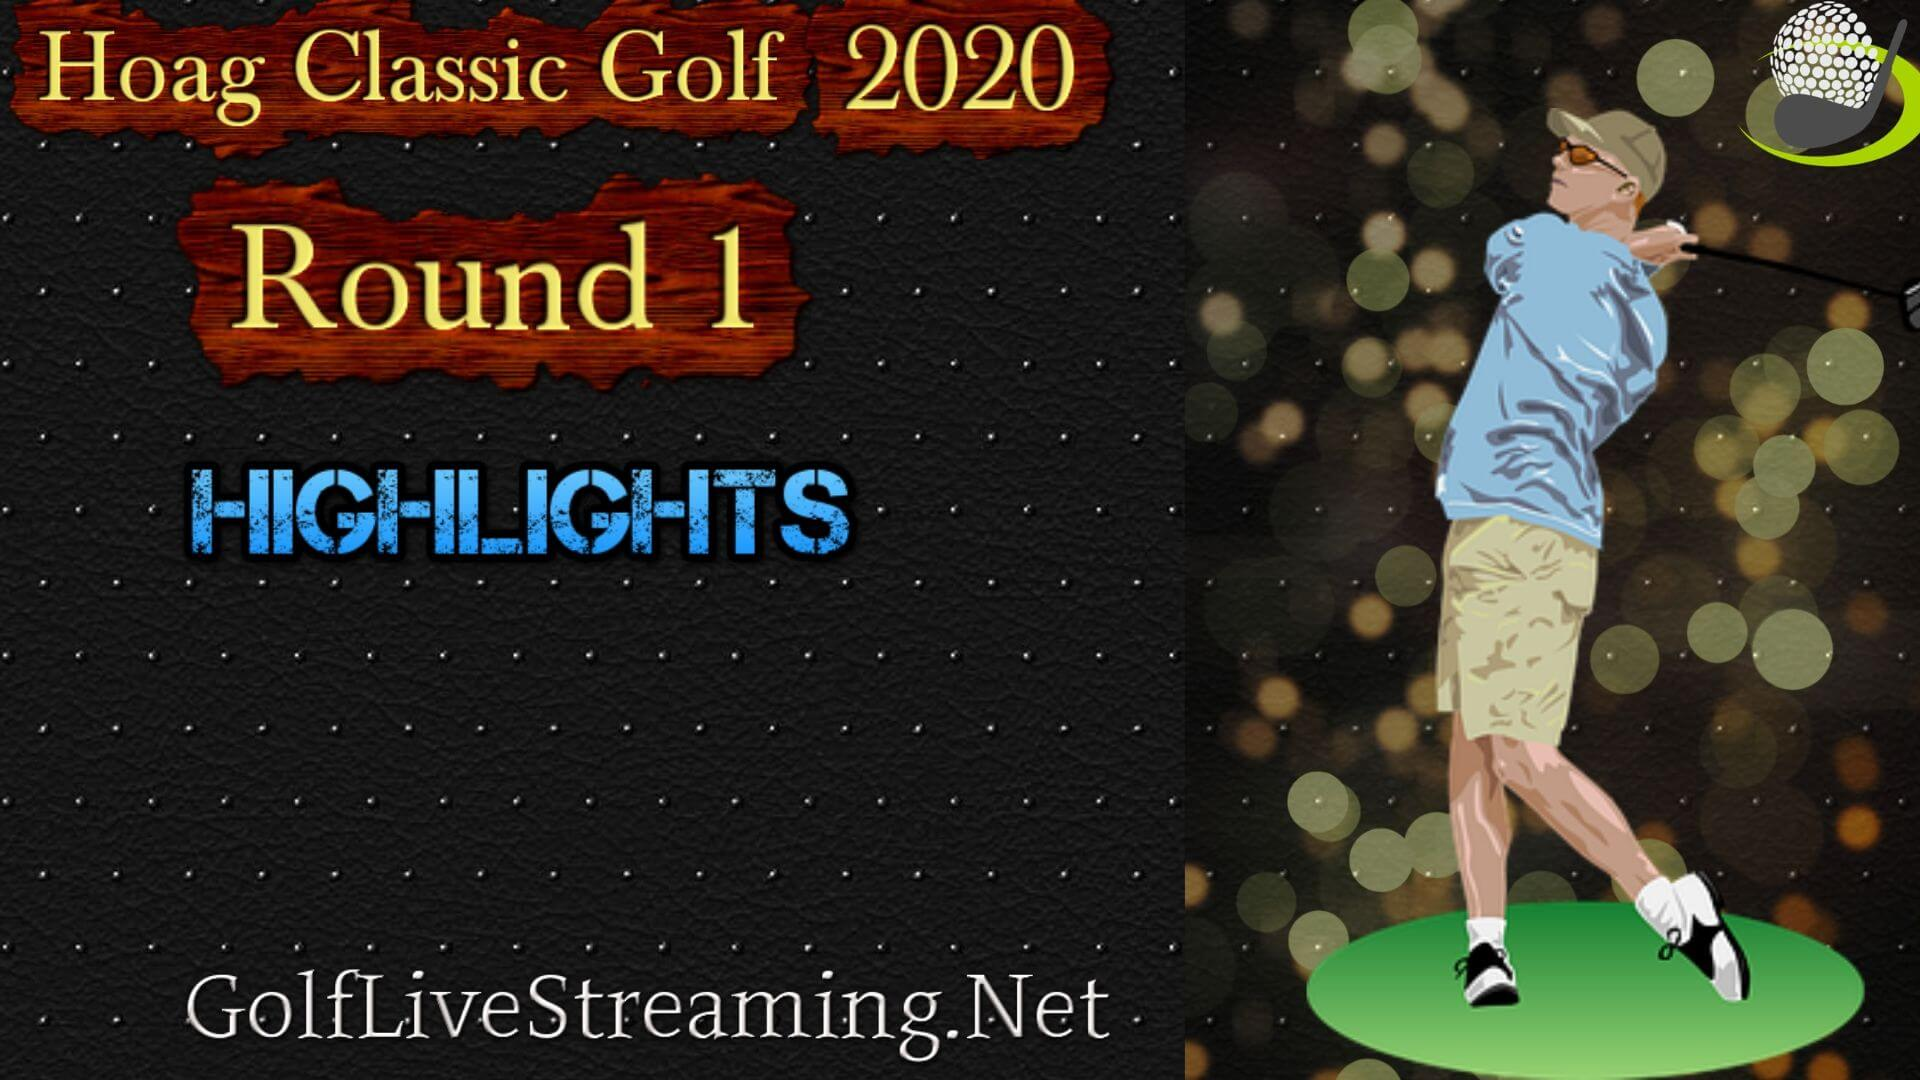 Hoag Classic Golf Rd 1 Highlights 2020